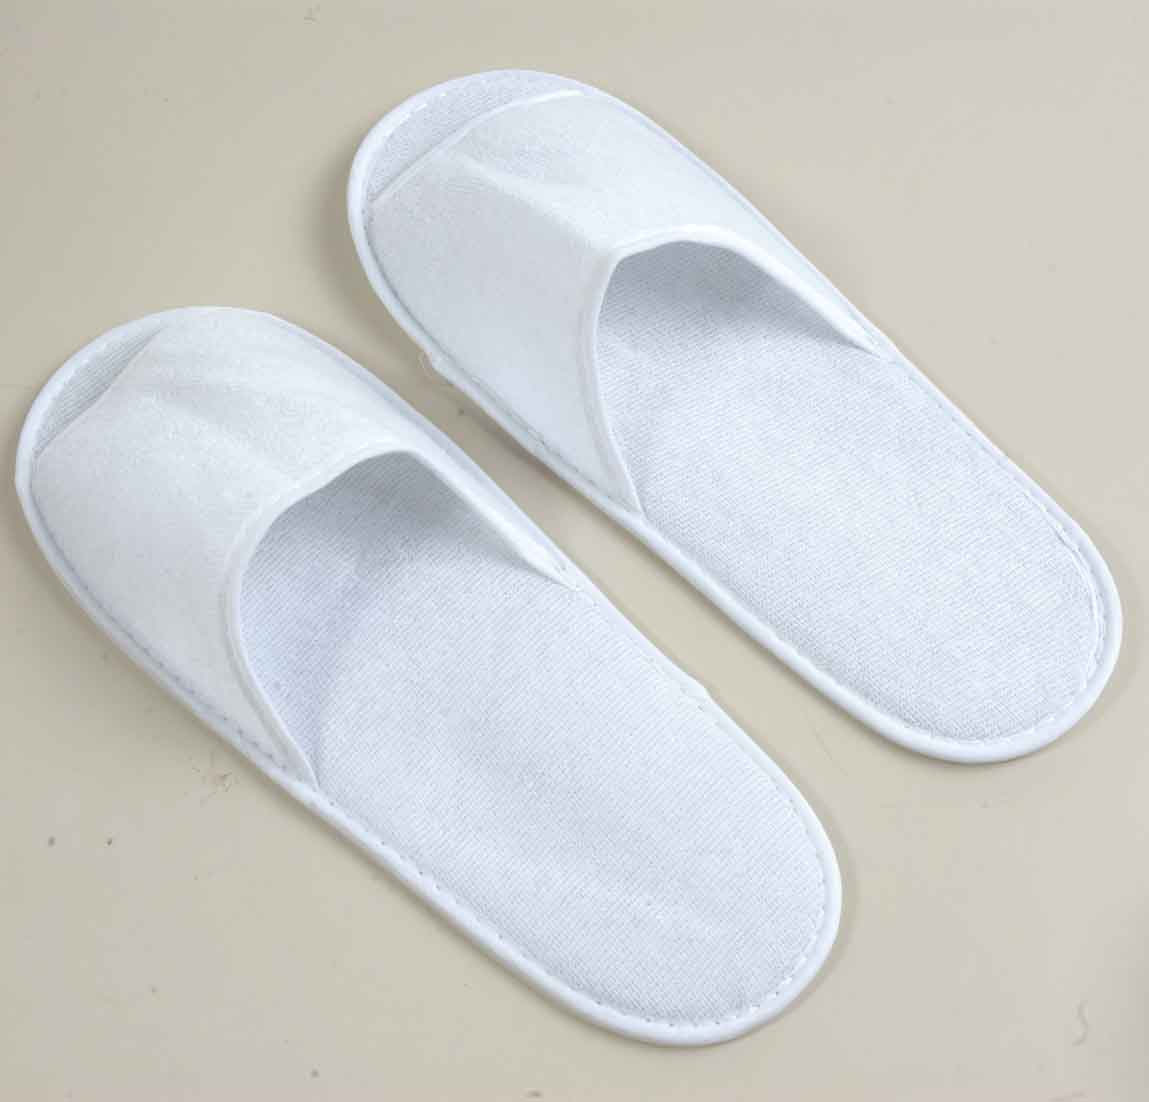 Towel slippers gb-285